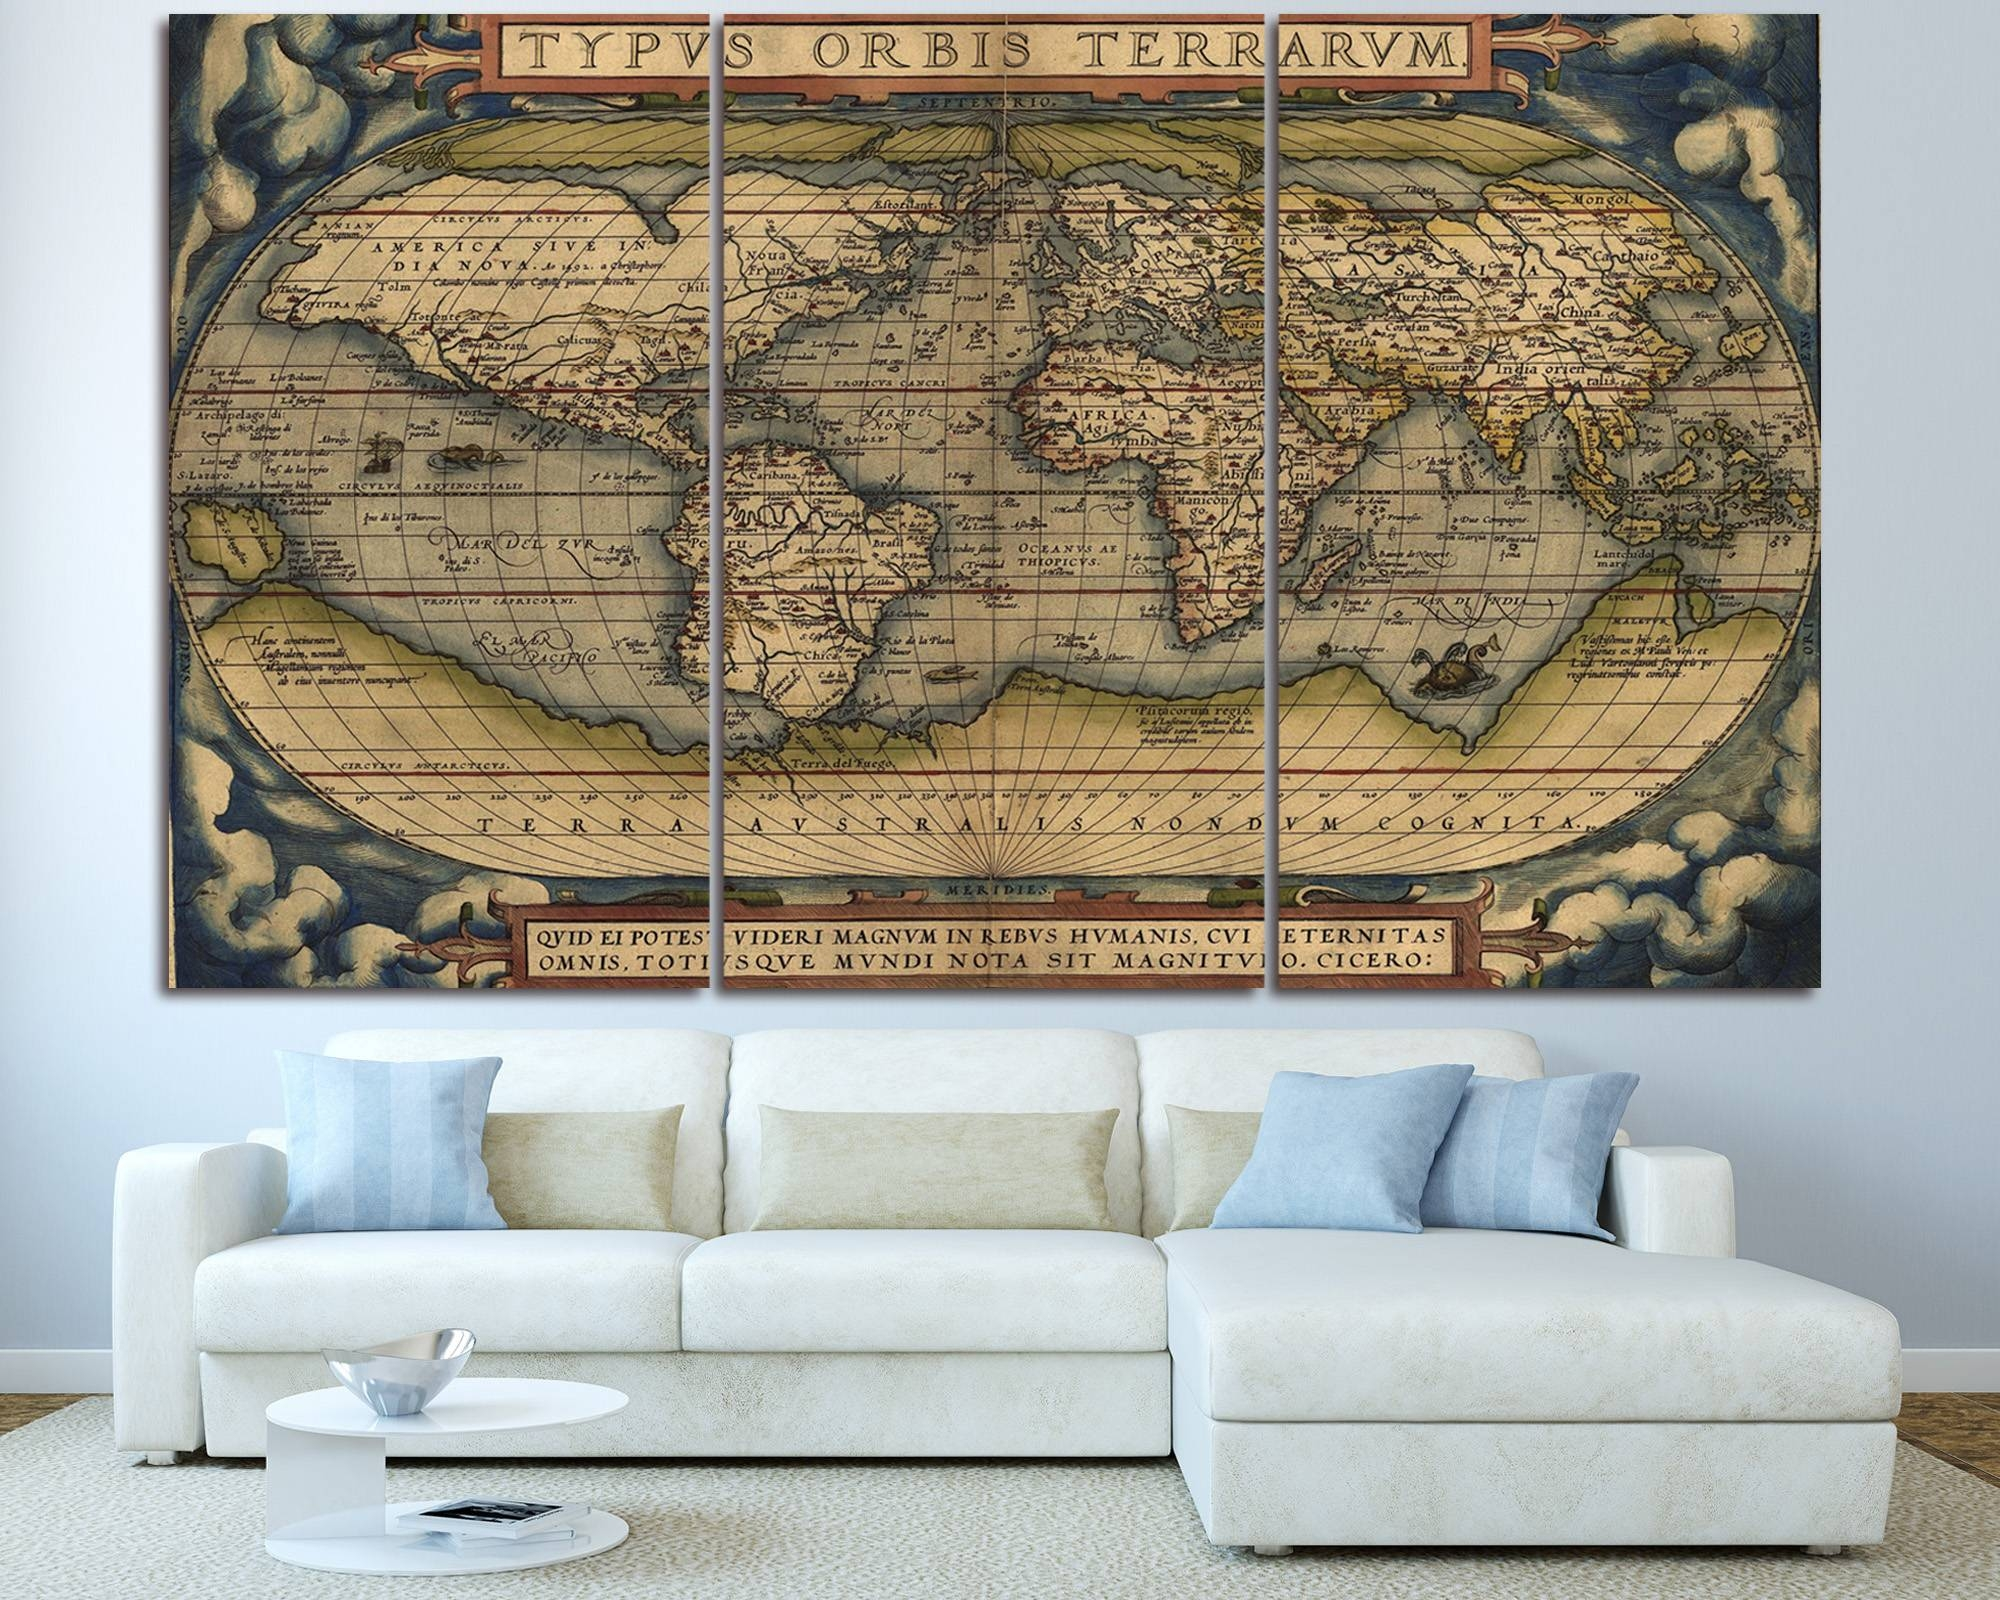 Vintage, Old Archives – Texelprintart Studio Throughout Most Popular Vintage World Map Wall Art (View 20 of 20)